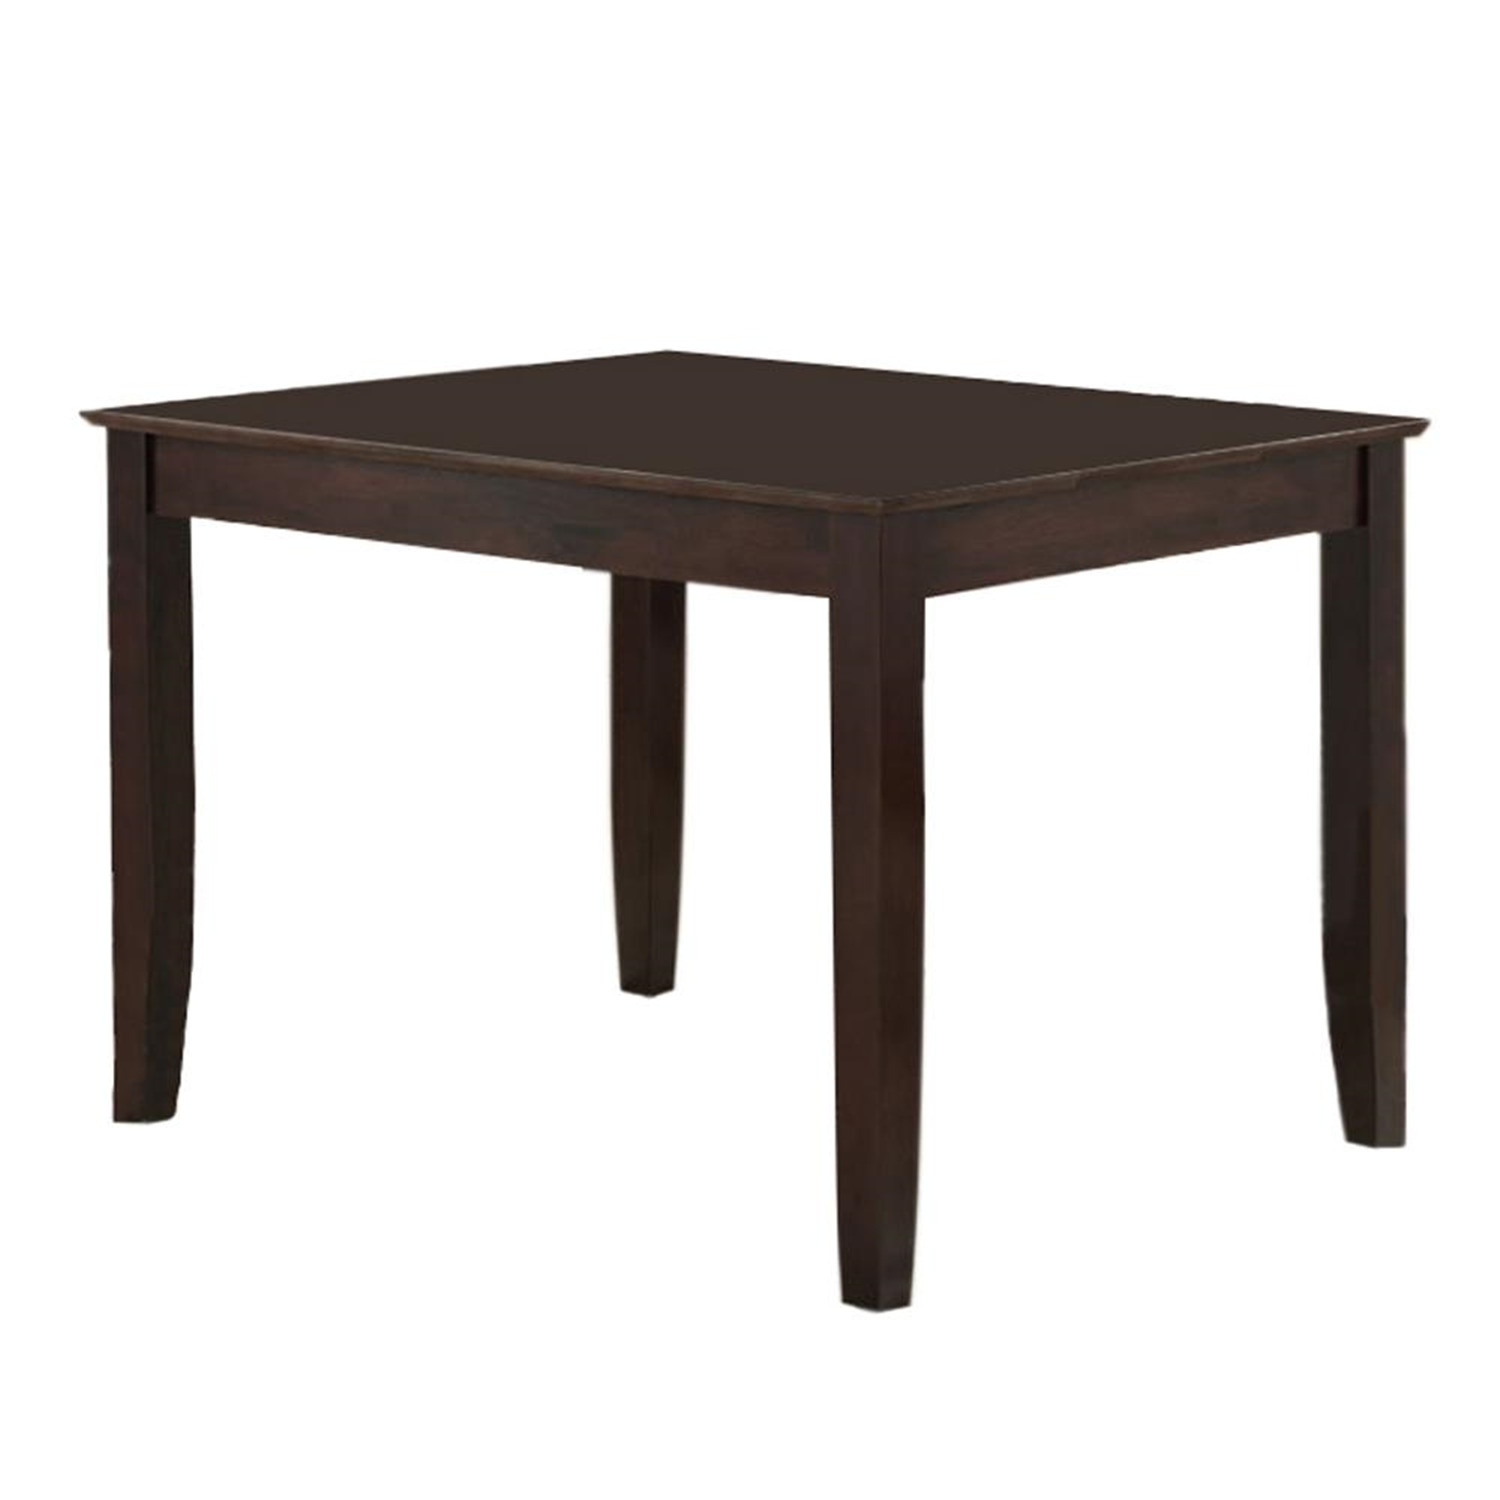 Walker edison solid wood dining table by oj commerce 219 for Solid wood dining table